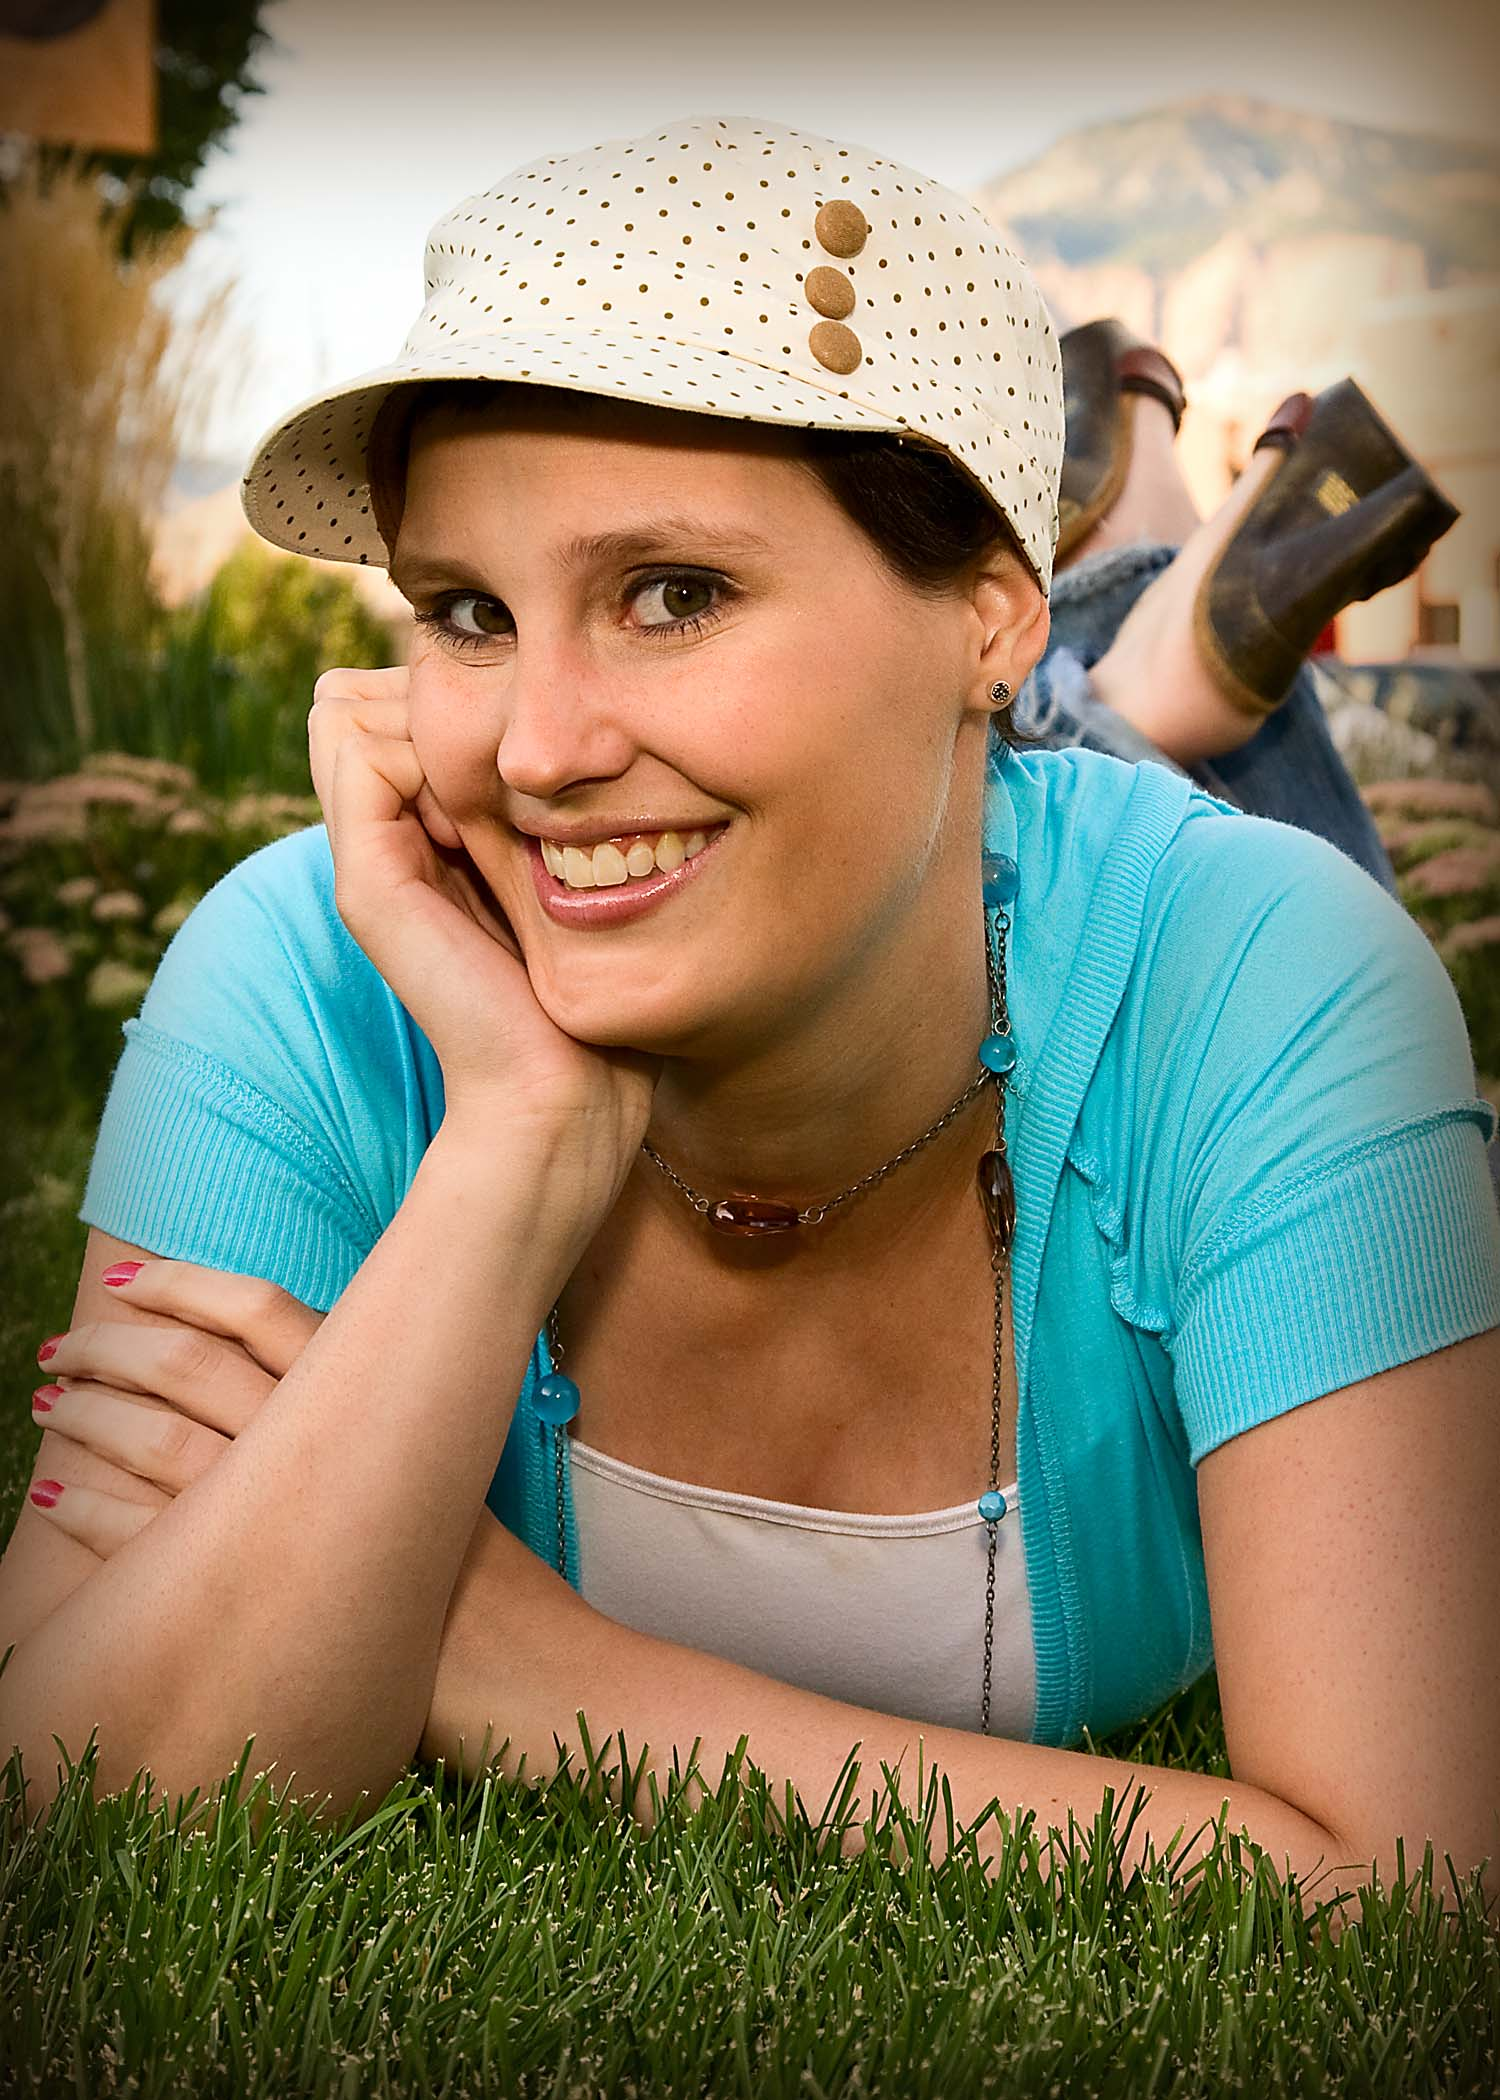 Natalie Jolley poses for the camera as her mother photographs, after diagnosis, Ogden, Utah, August 2009 | Photo courtesy of Marjean Jolley, St. George News